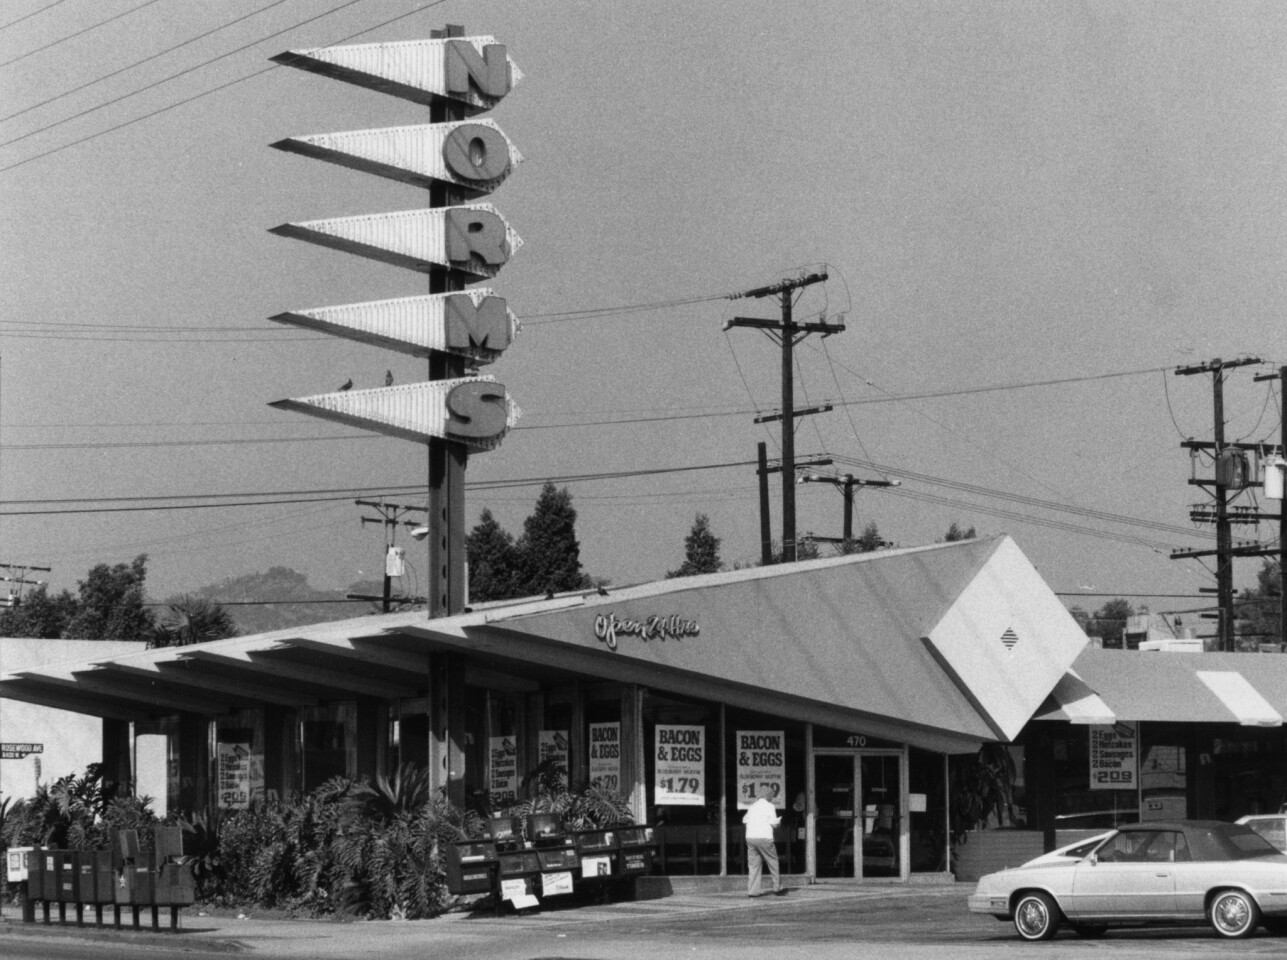 Norms opened on La Cienega Boulevard in 1957. Eldon Davis' coffee shops were inspired by the Space Age and California's car culture.